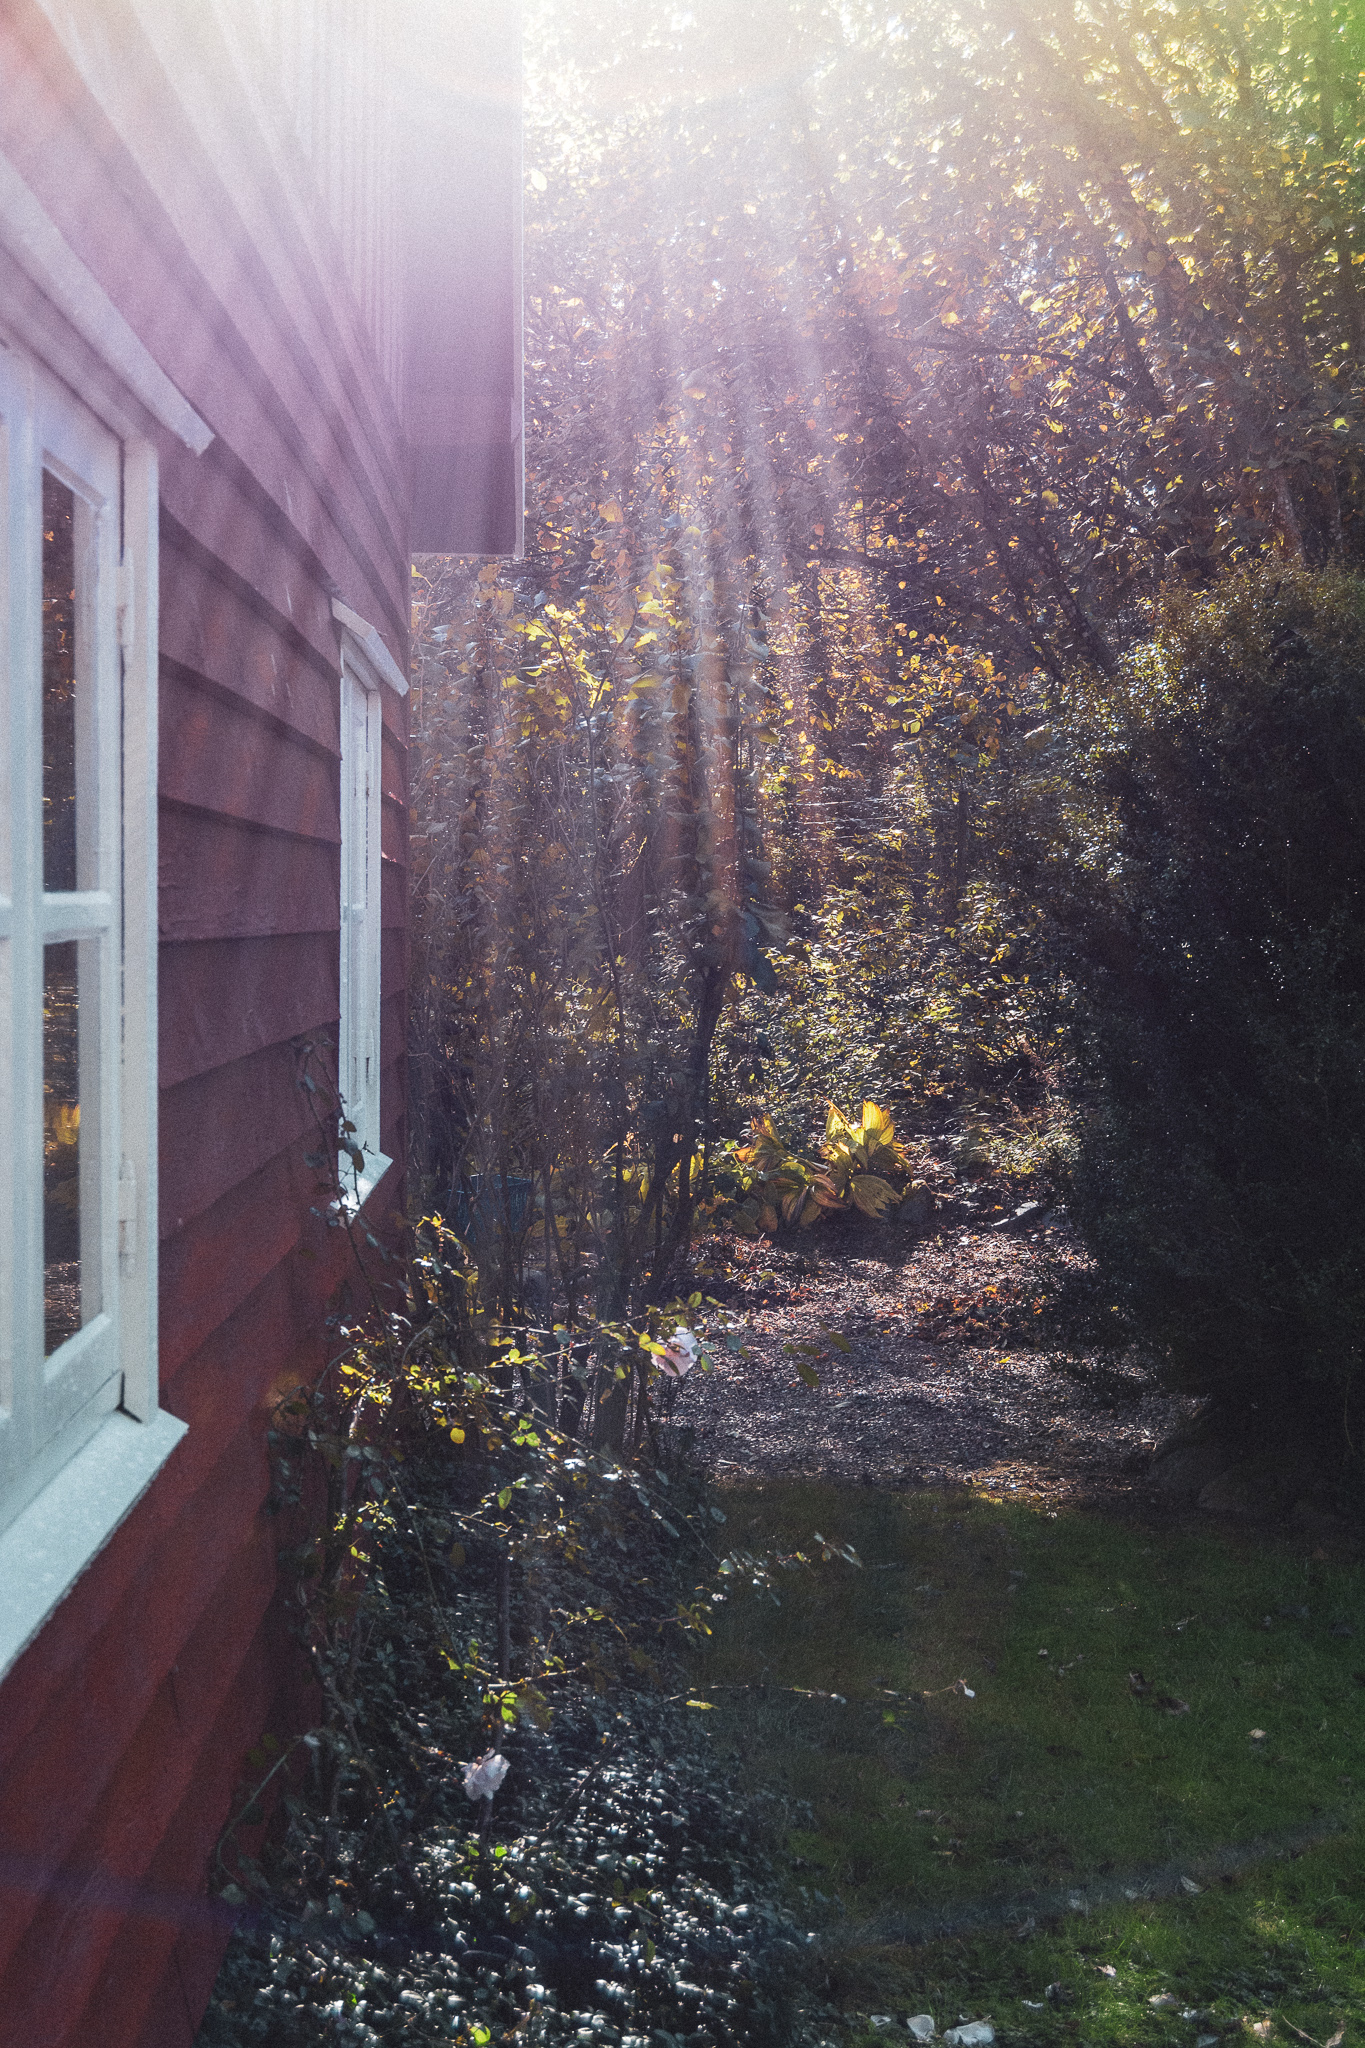 sunbeams, garden, wooden house, solstråler, have, træhus, stories by holst